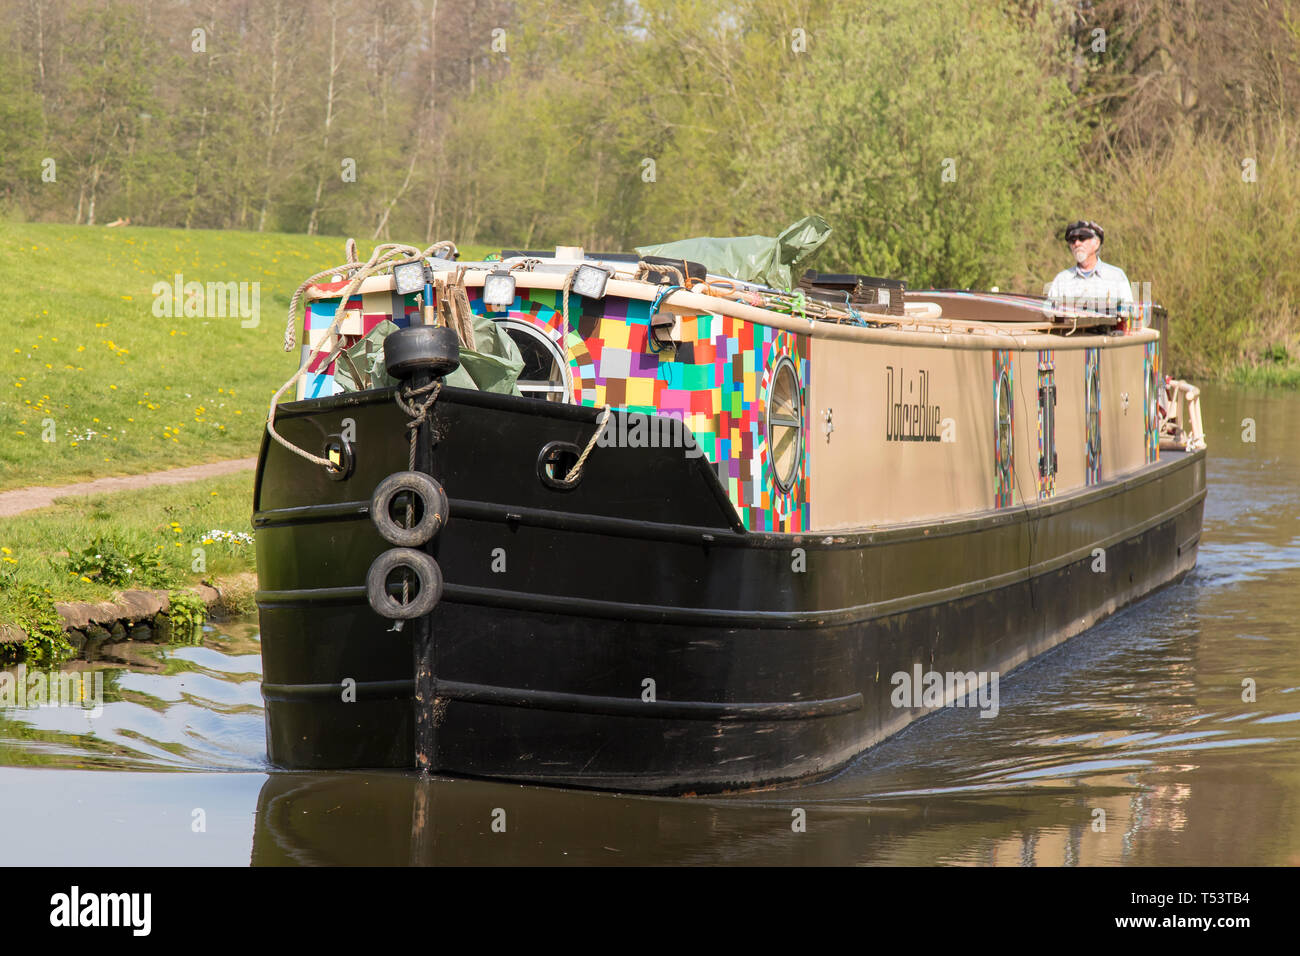 Landscape, close up of oncoming narrowboat travelling on UK canal in spring sunshine; single, retired man in cap stands at rear steering canal boat. - Stock Image